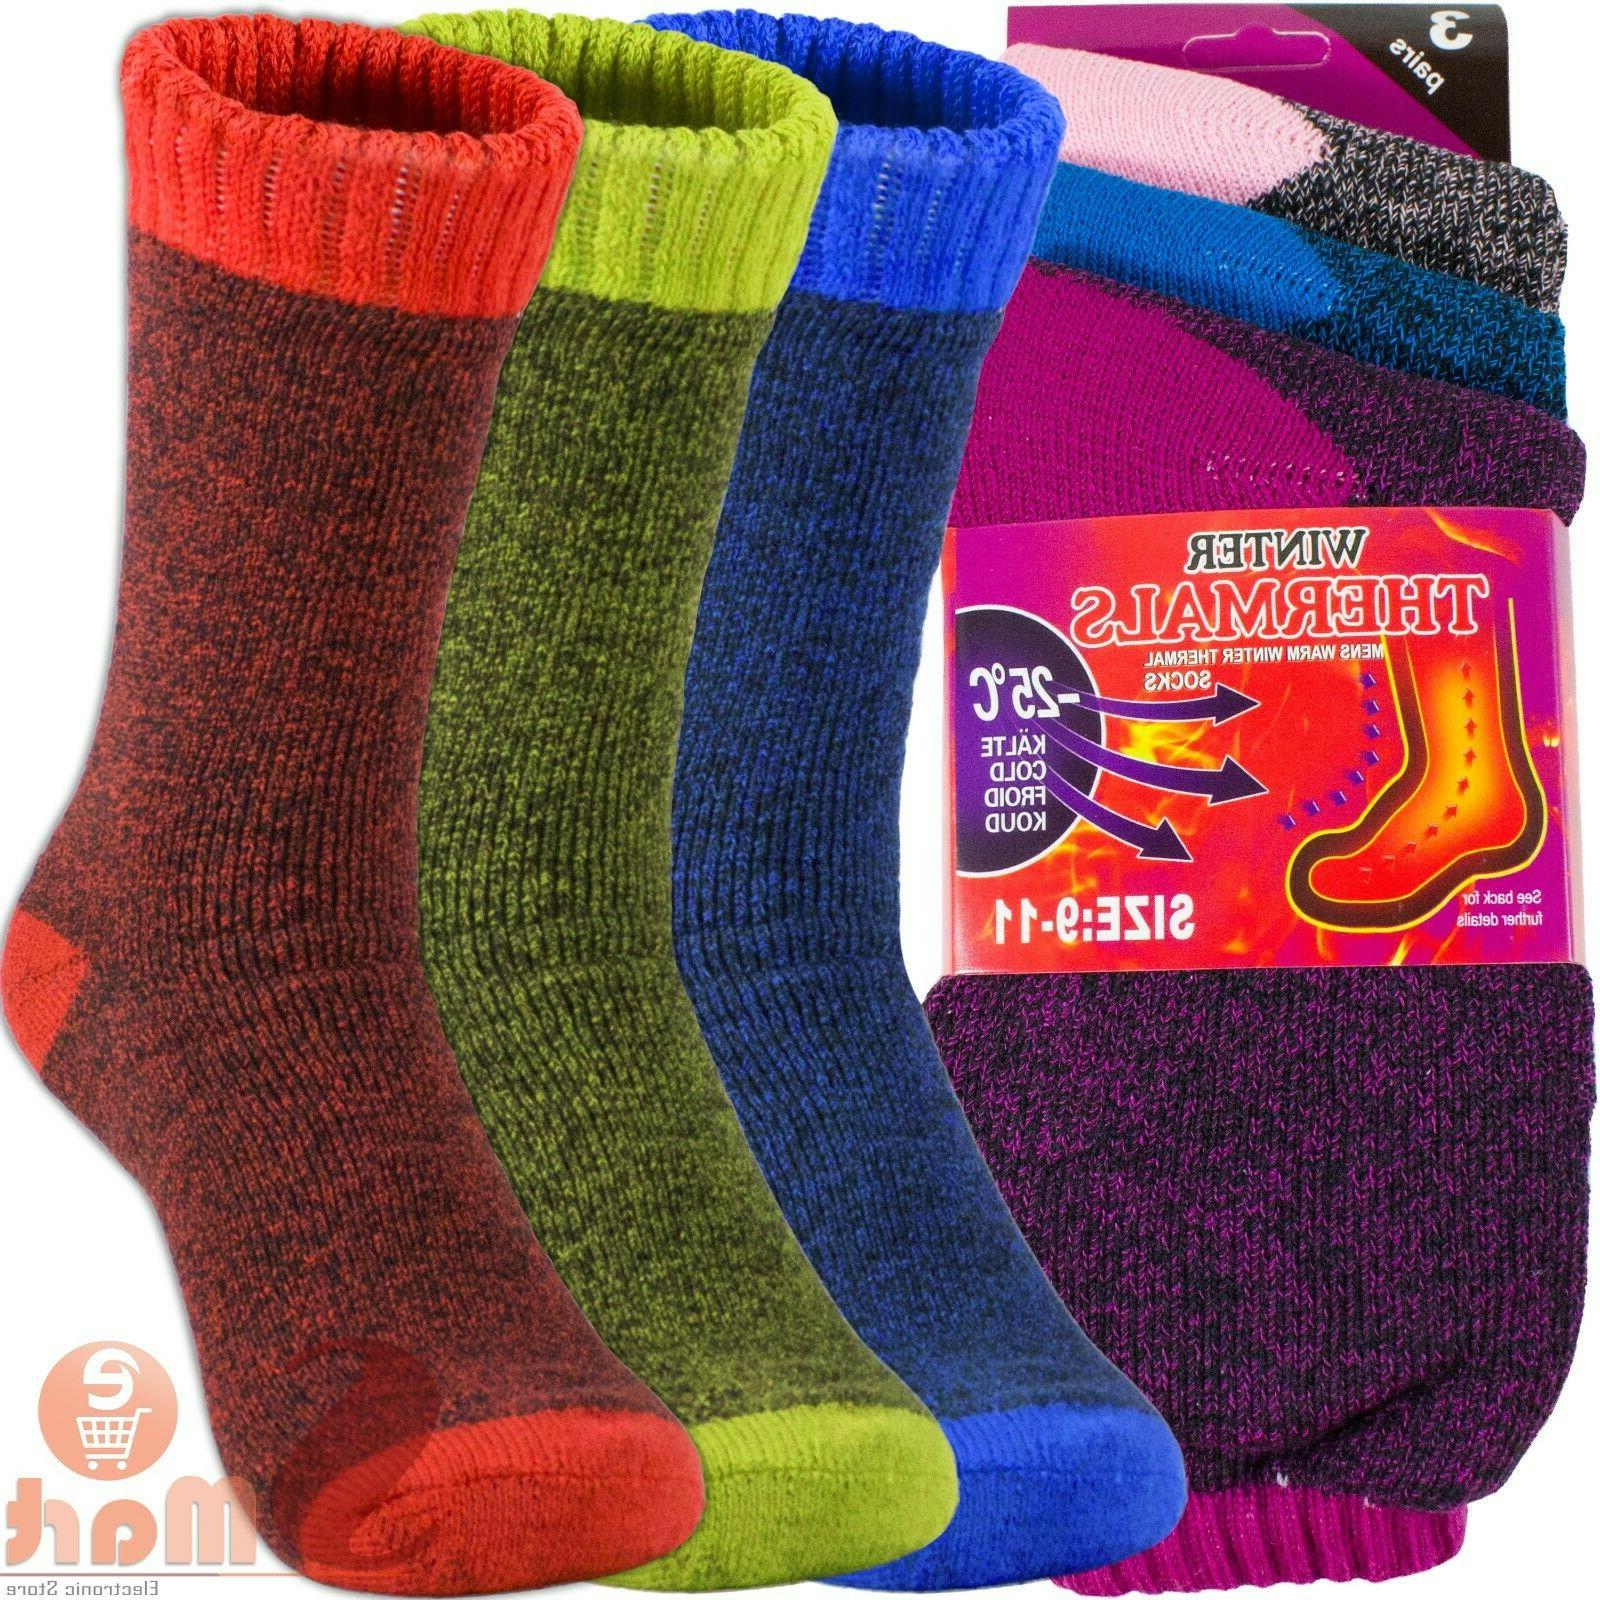 6 pairs womens winter warm thermal heated